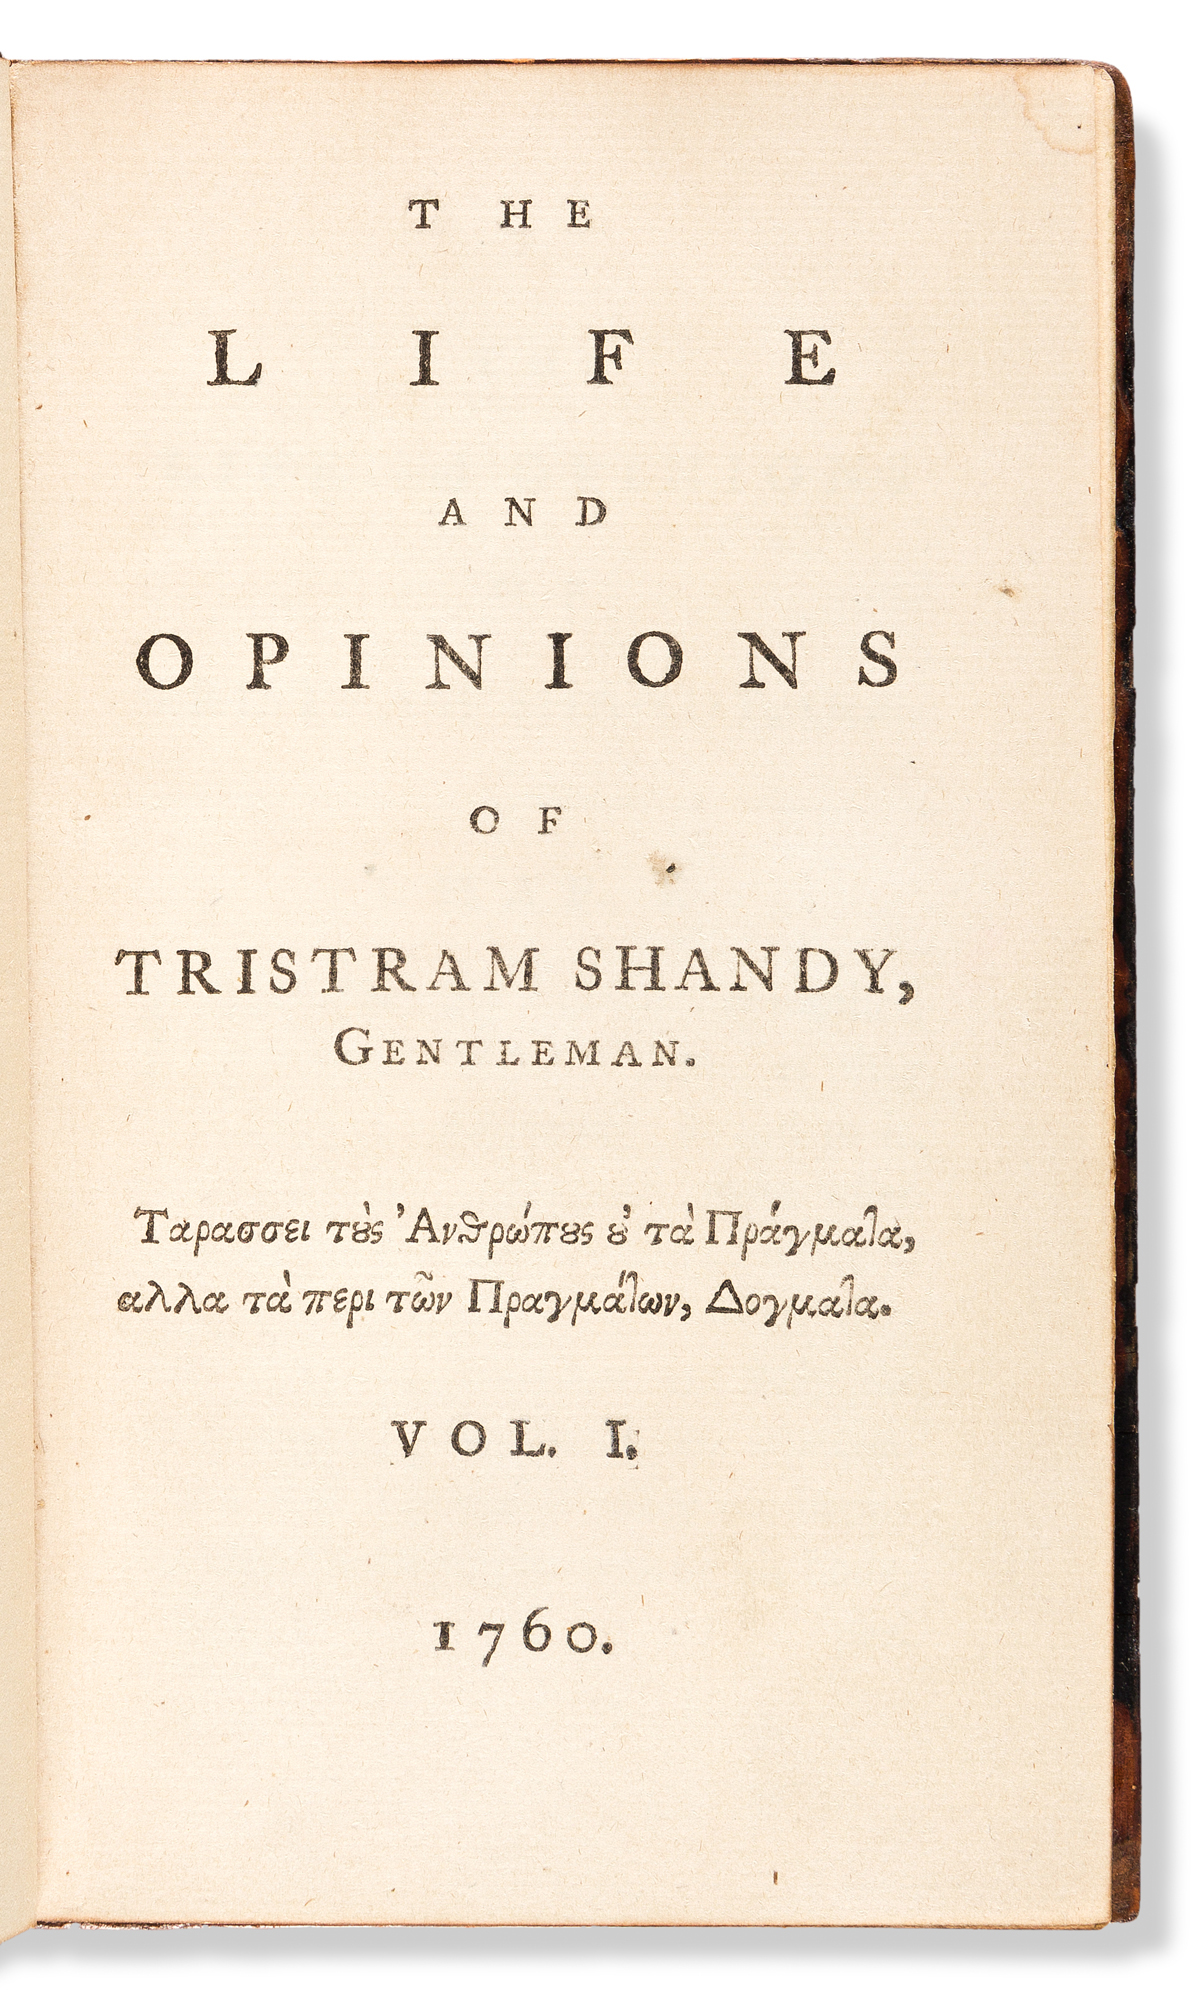 Sterne, Laurence (1713-1768) The Life and Opinions of Tristram Shandy, Gentleman.